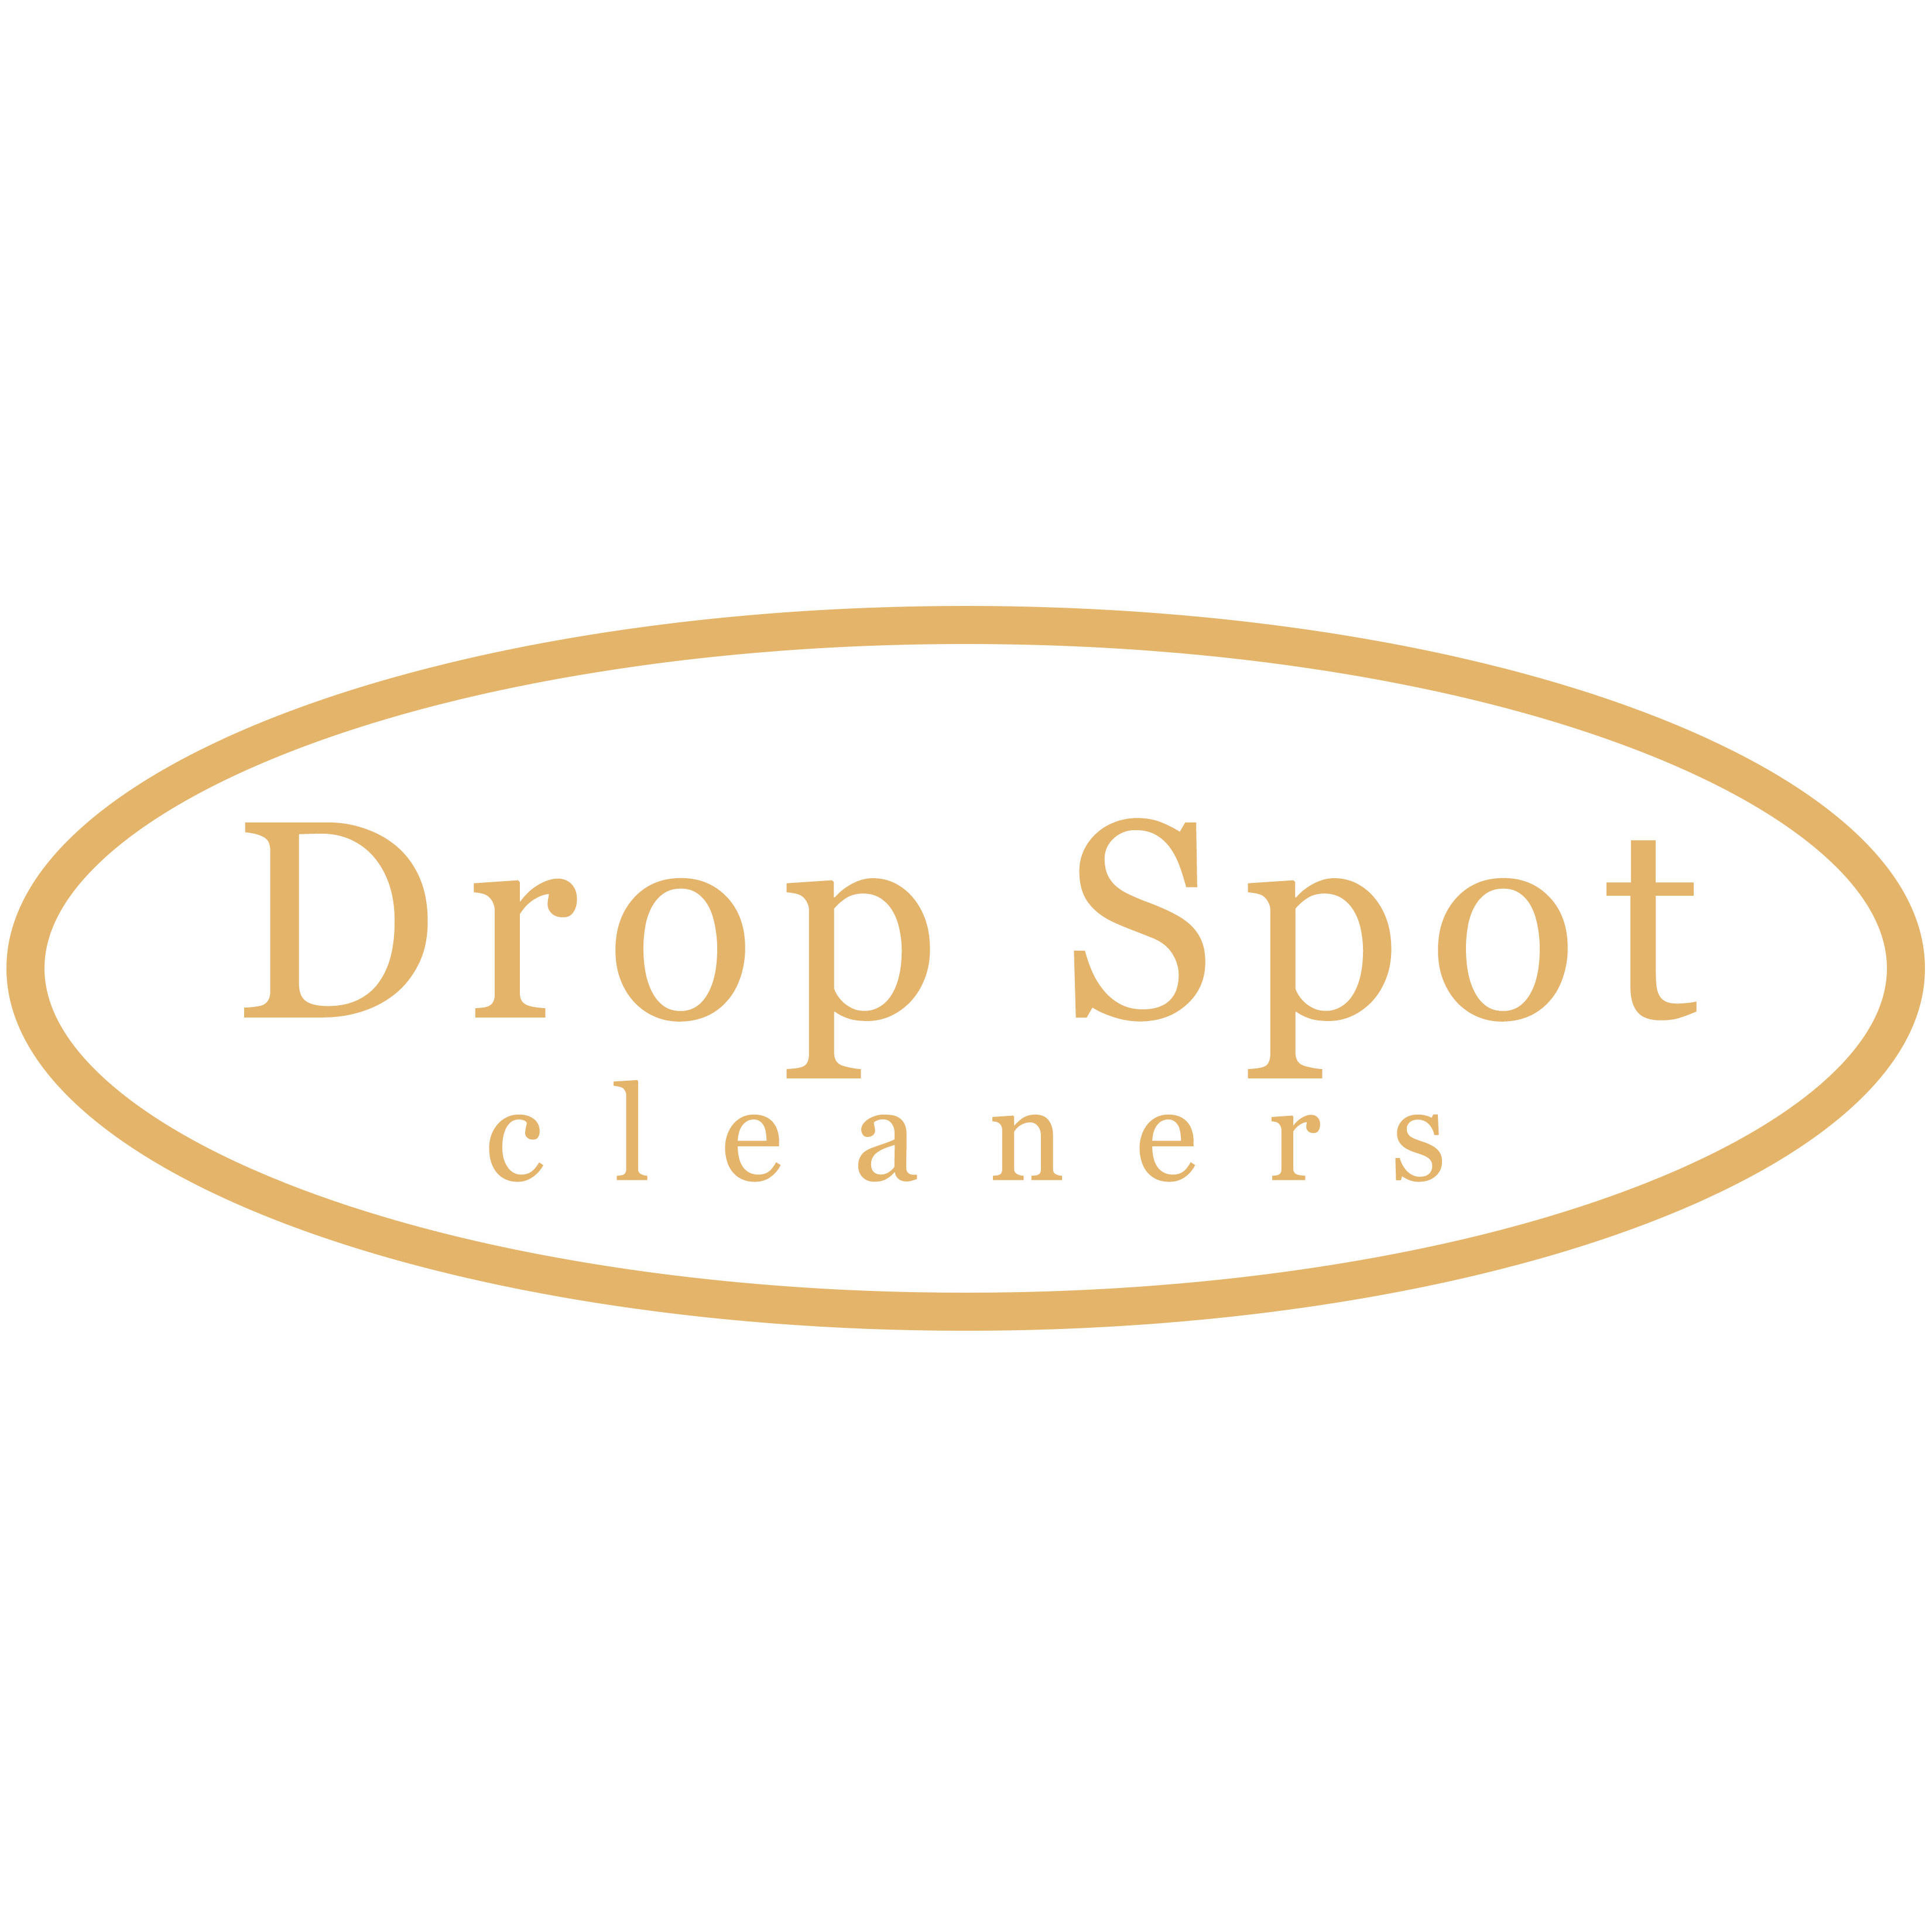 Drop Spot Cleaners